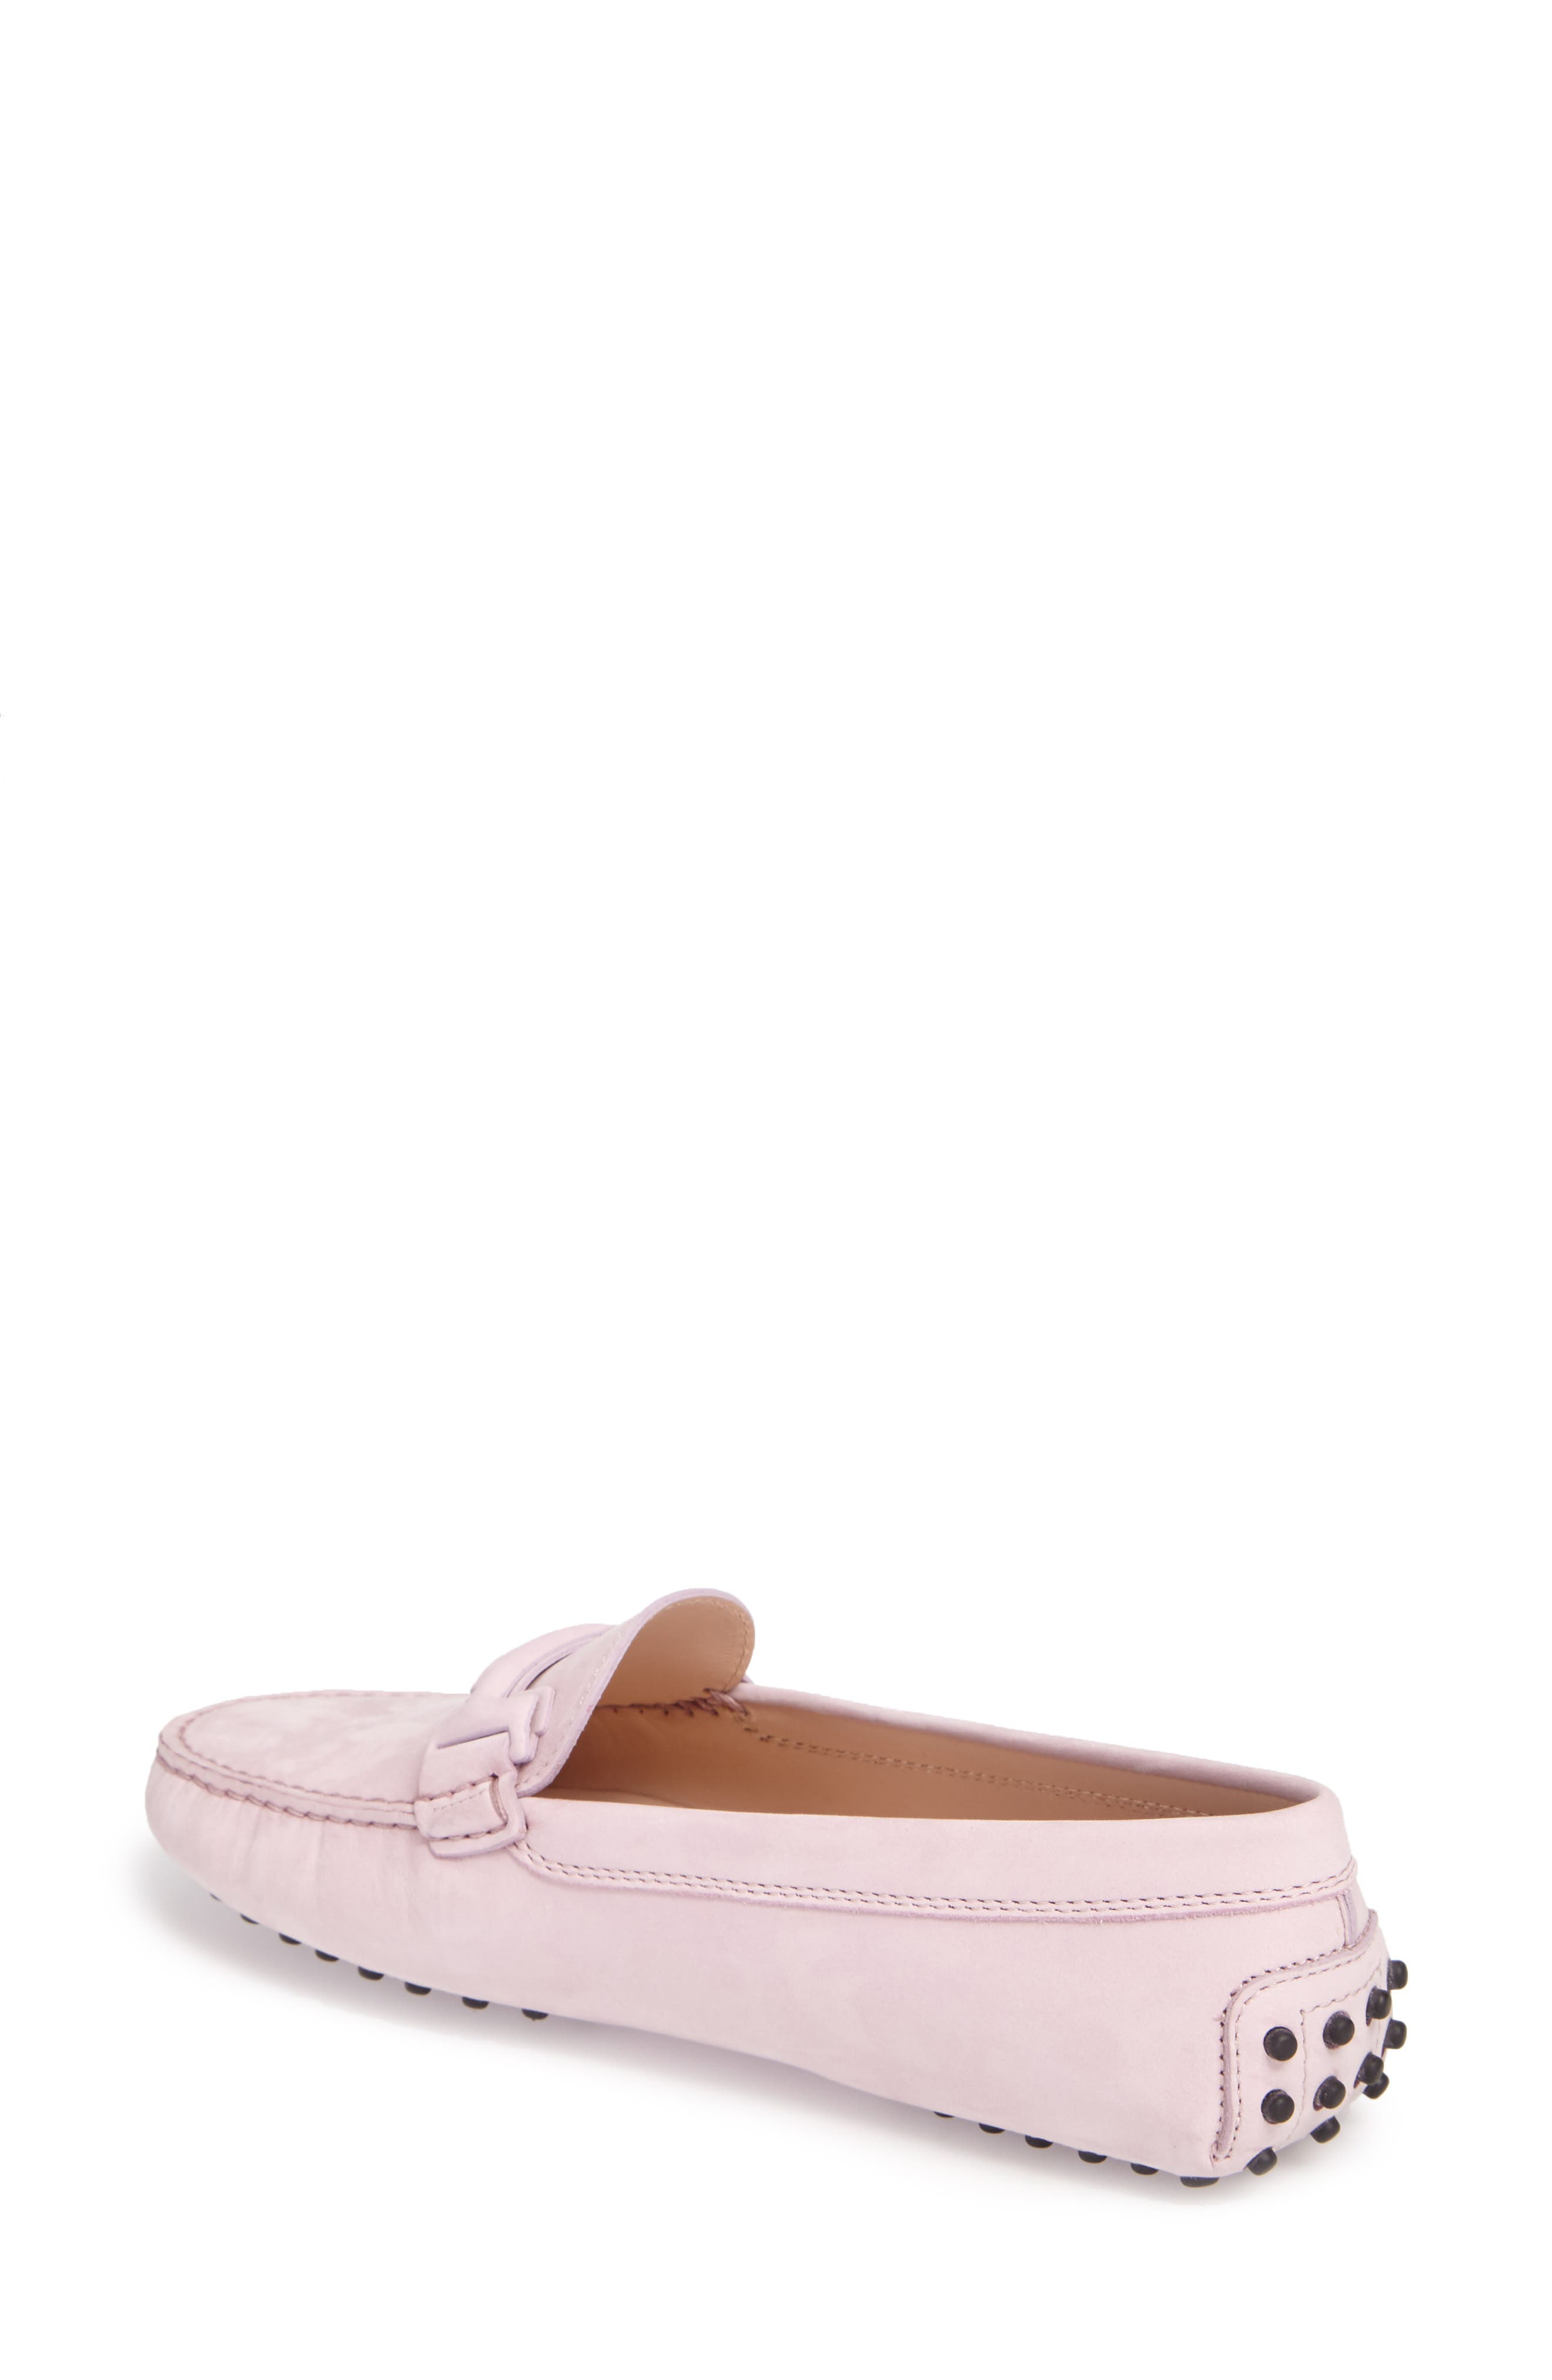 Gommini Covered Double T Loafer,                             Alternate thumbnail 5, color,